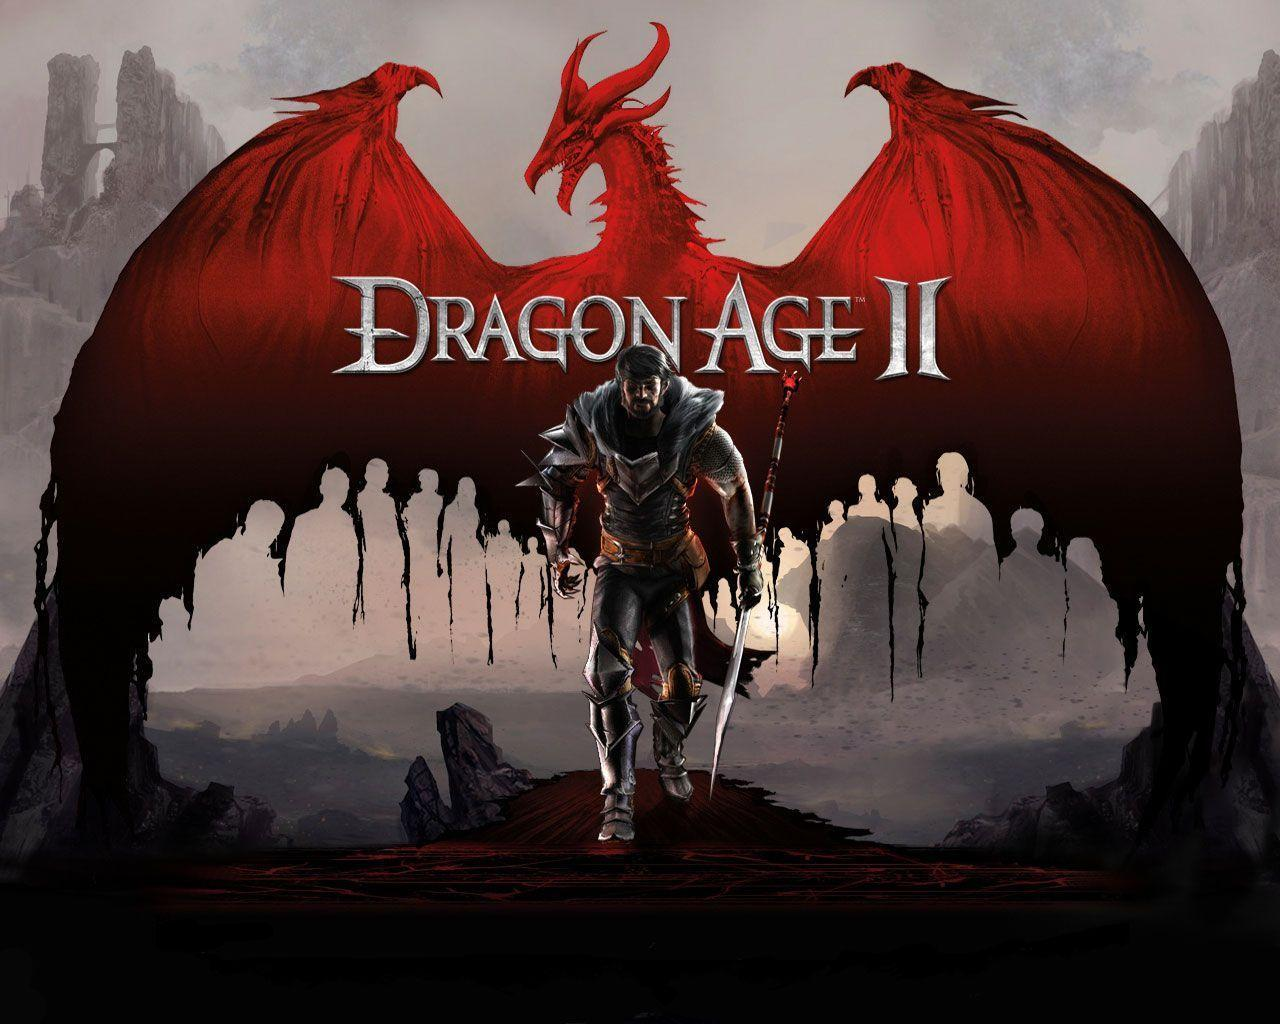 Dragon Age 2 Desktop, Mobile Wallpapers - Games Wallpapers HD